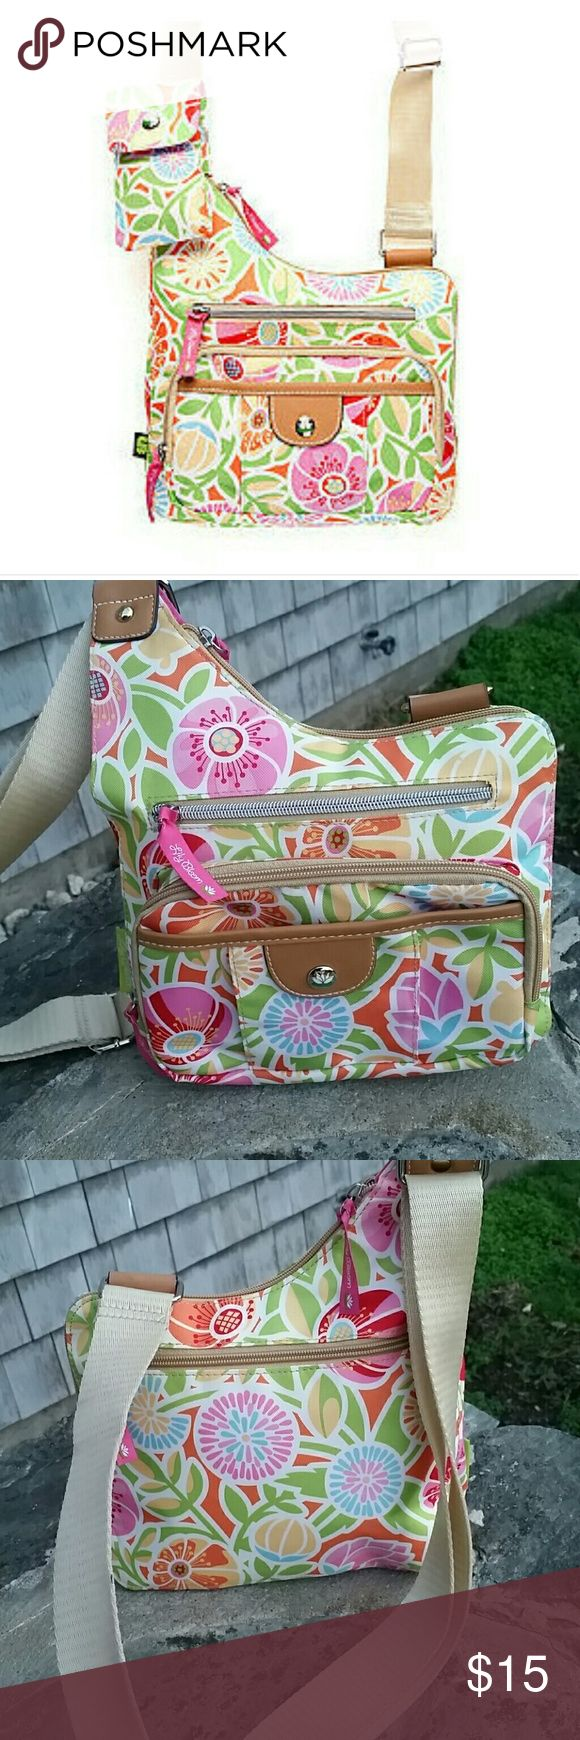 Lily Bloom Crossbody purse NWOT never been used stylish and practical purse with plenty of pockets. Bright fun color. Missing attachable coin purse other wise perfect. Lily bloom  Bags Crossbody Bags